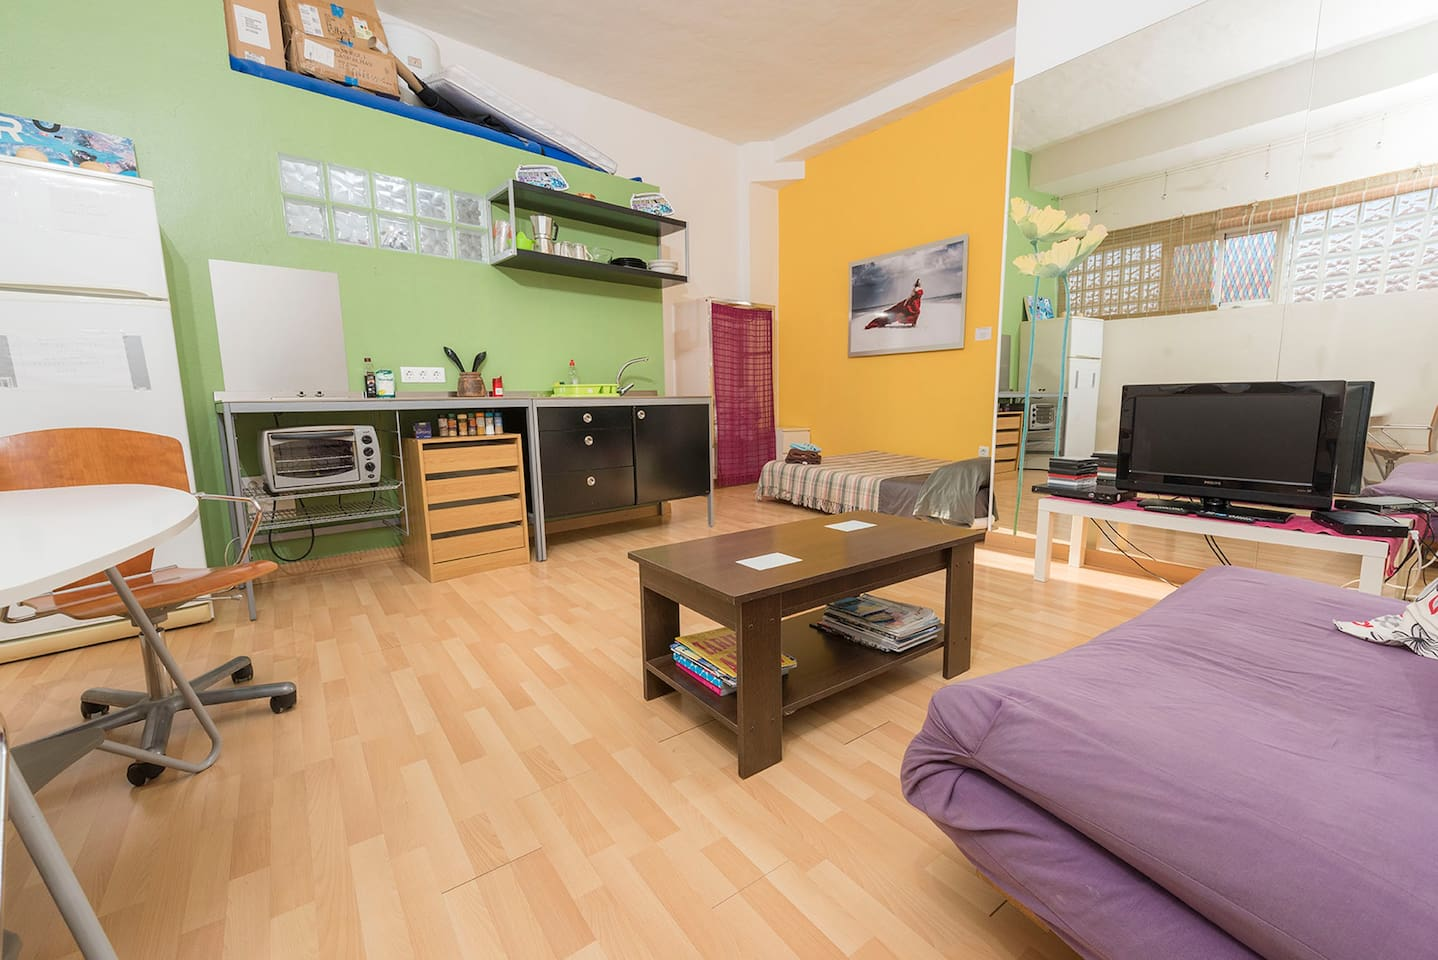 Small cozy Loft with Wi-fi, kitchen and heating. Very close to the beach.